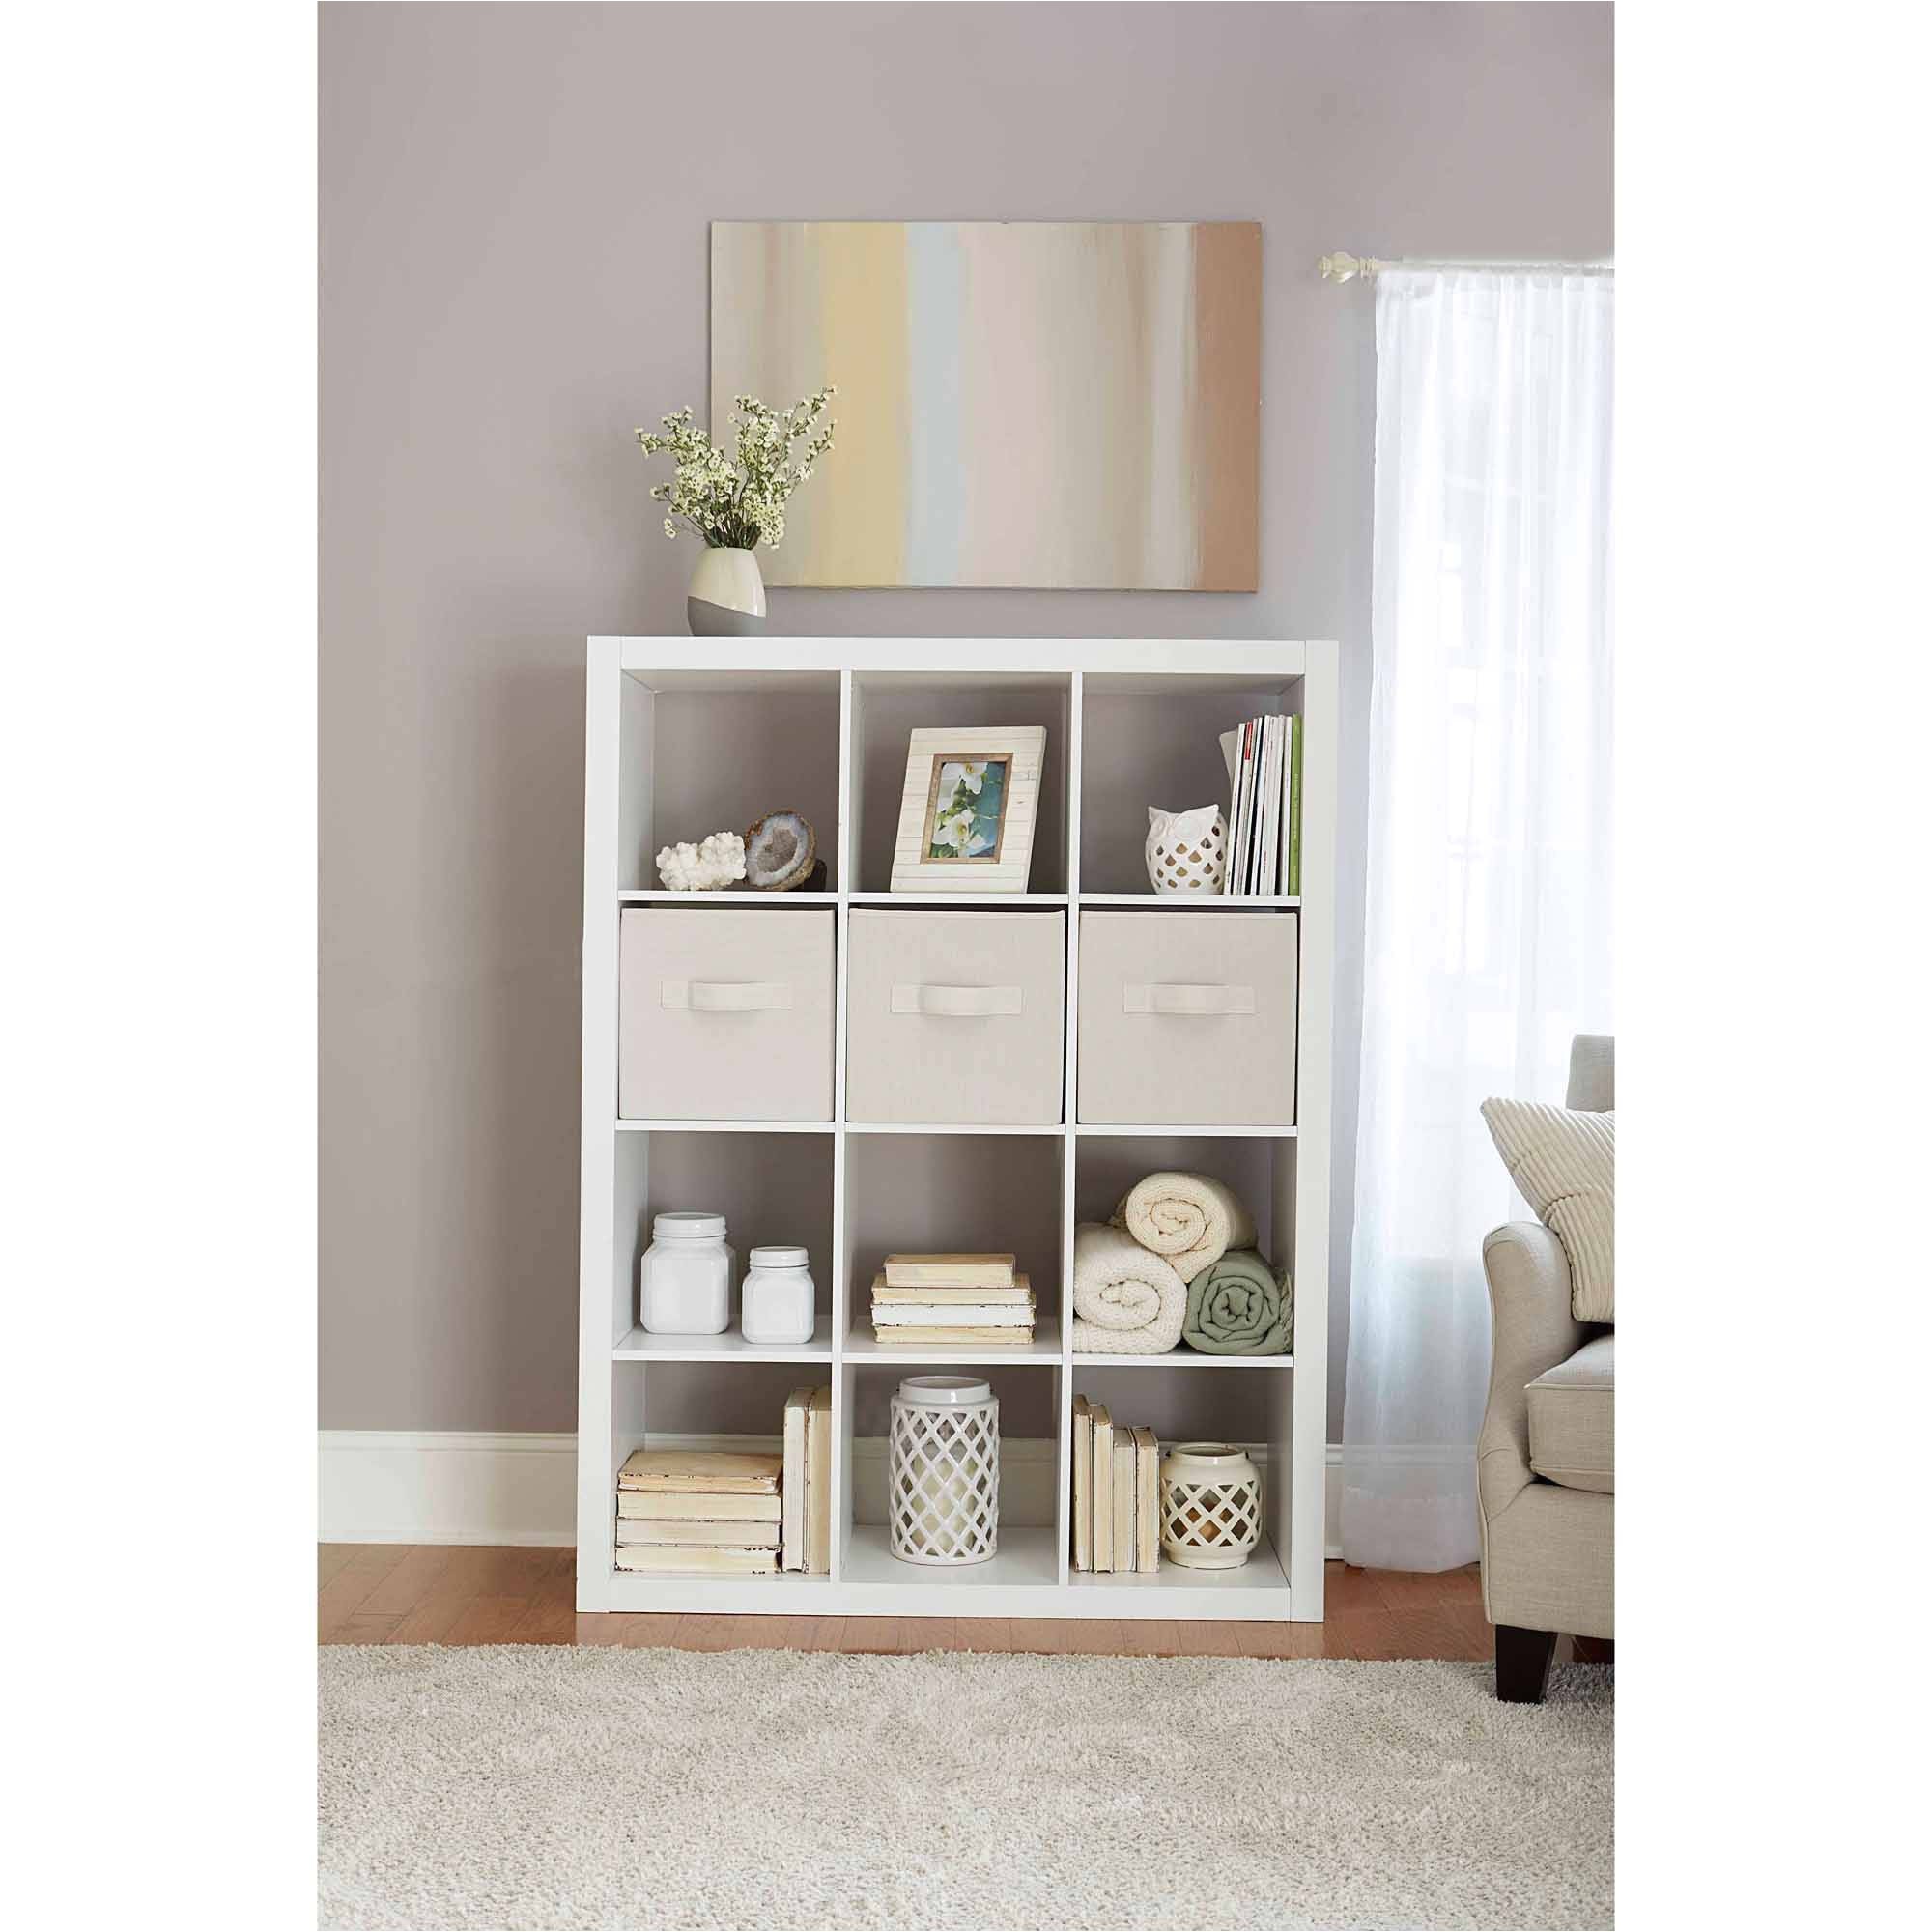 better homes and gardens 12 cube storage organizer multiple colors walmart com